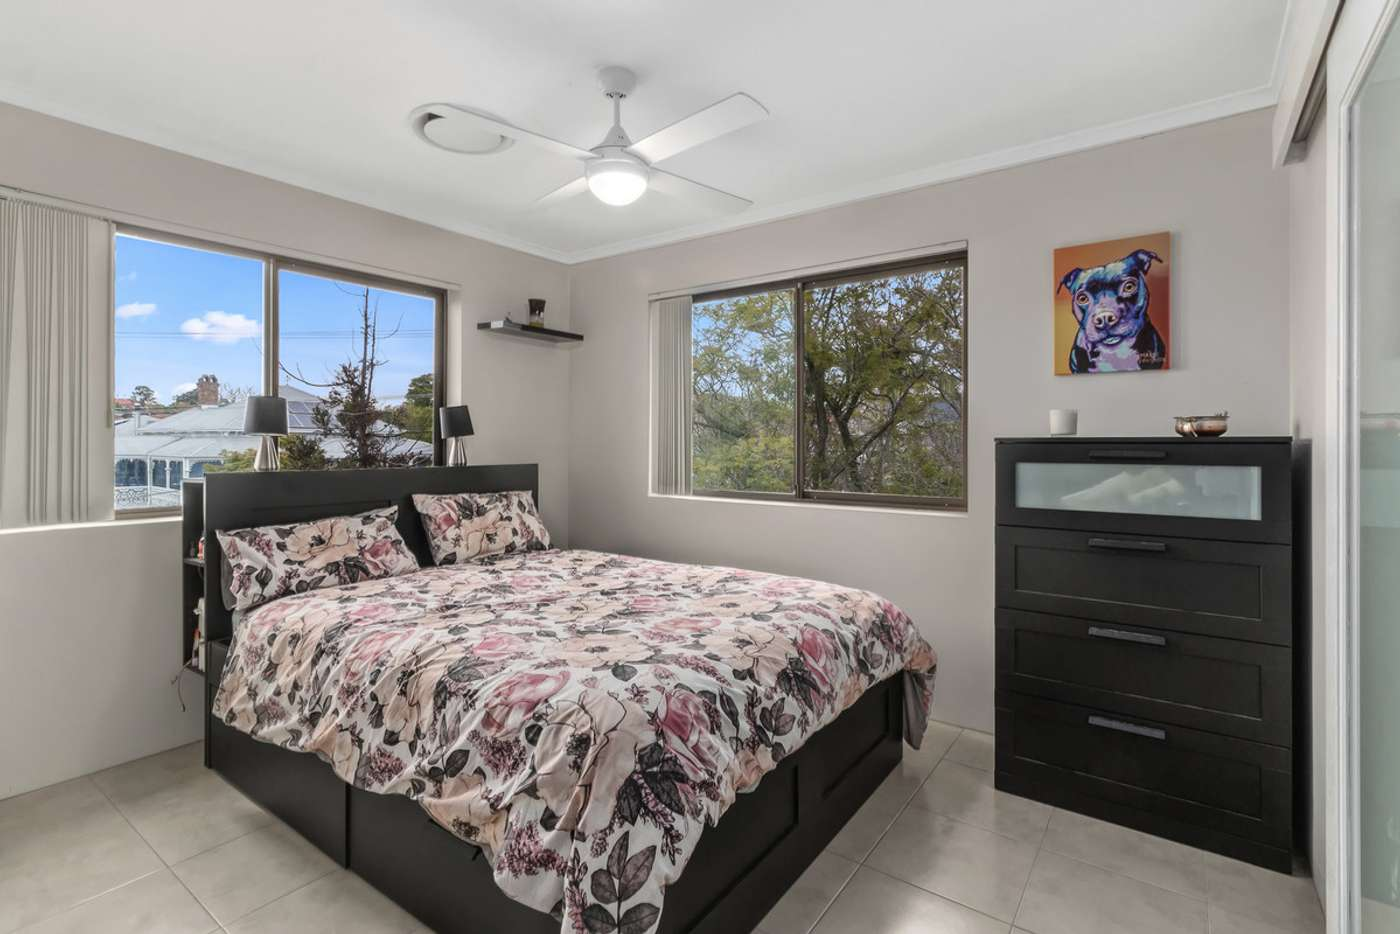 Sixth view of Homely unit listing, 3/41 Ascog Terrace, Toowong QLD 4066